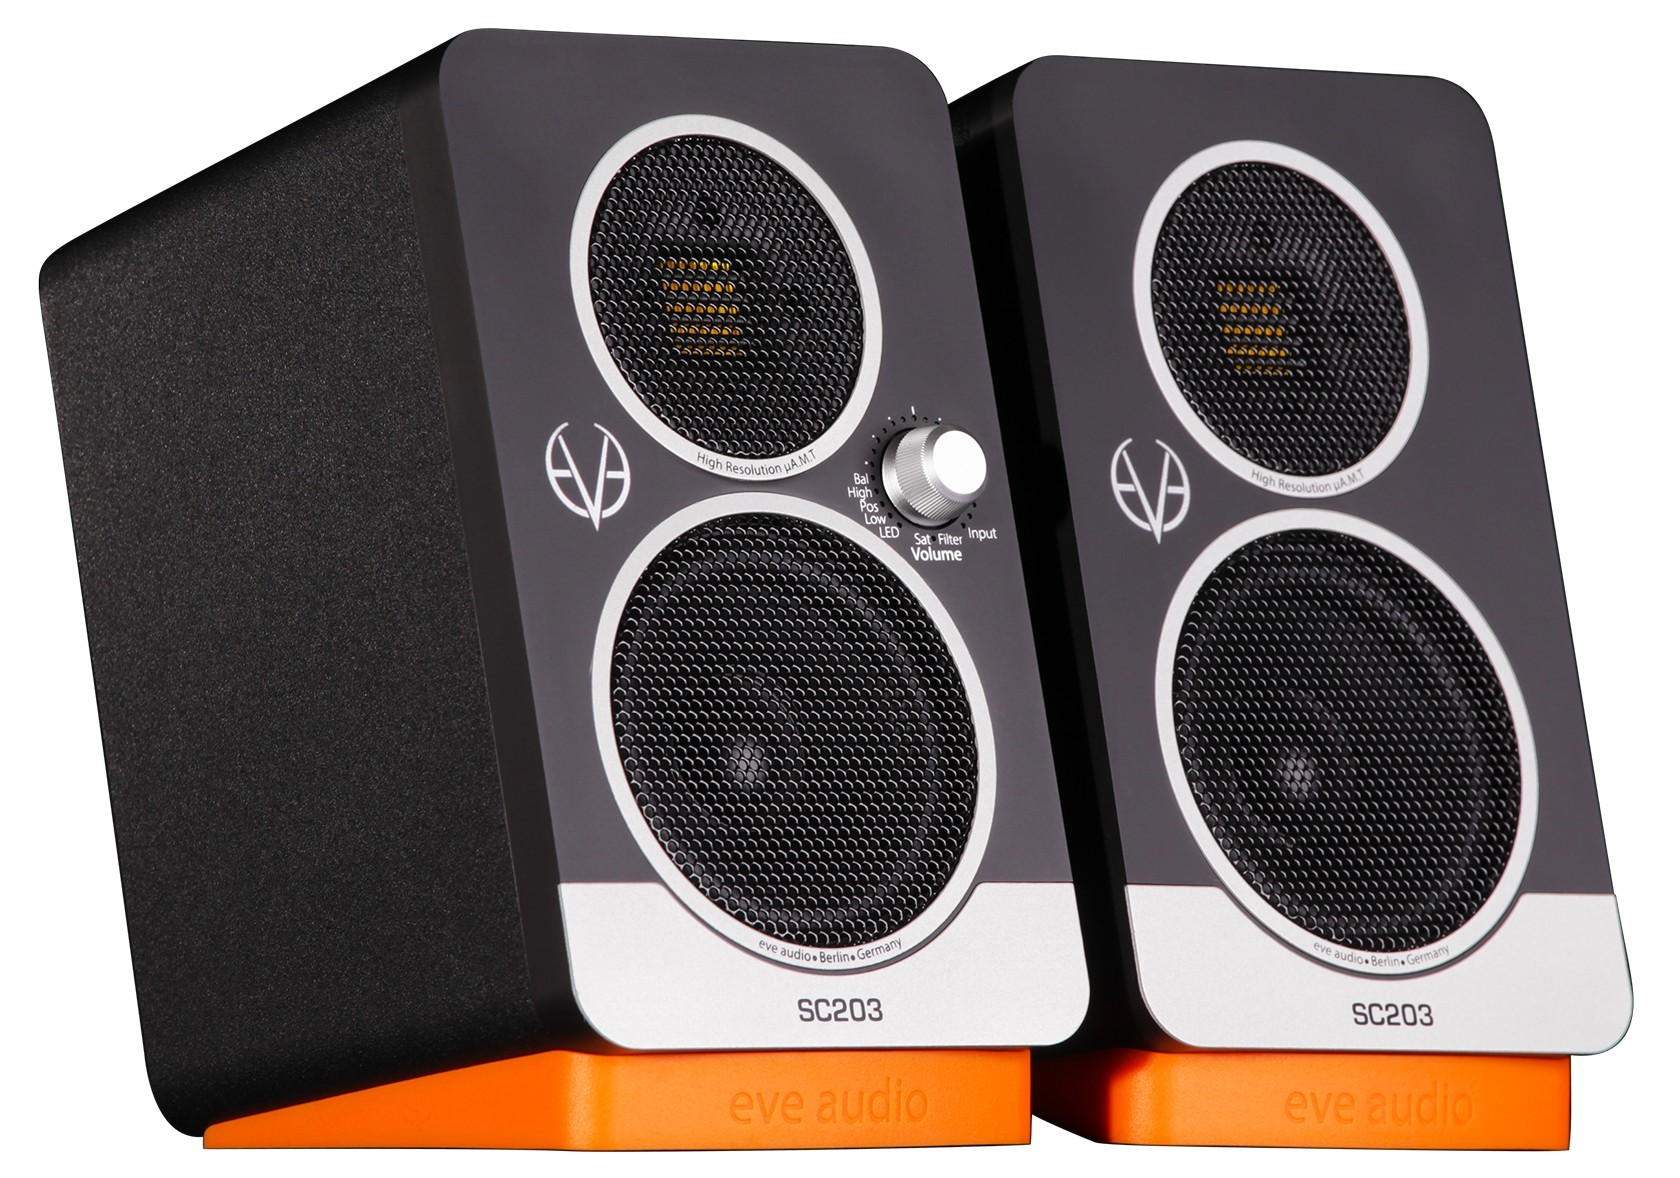 ENCEINTE MONITORING SC203 EVE AUDIO la paire